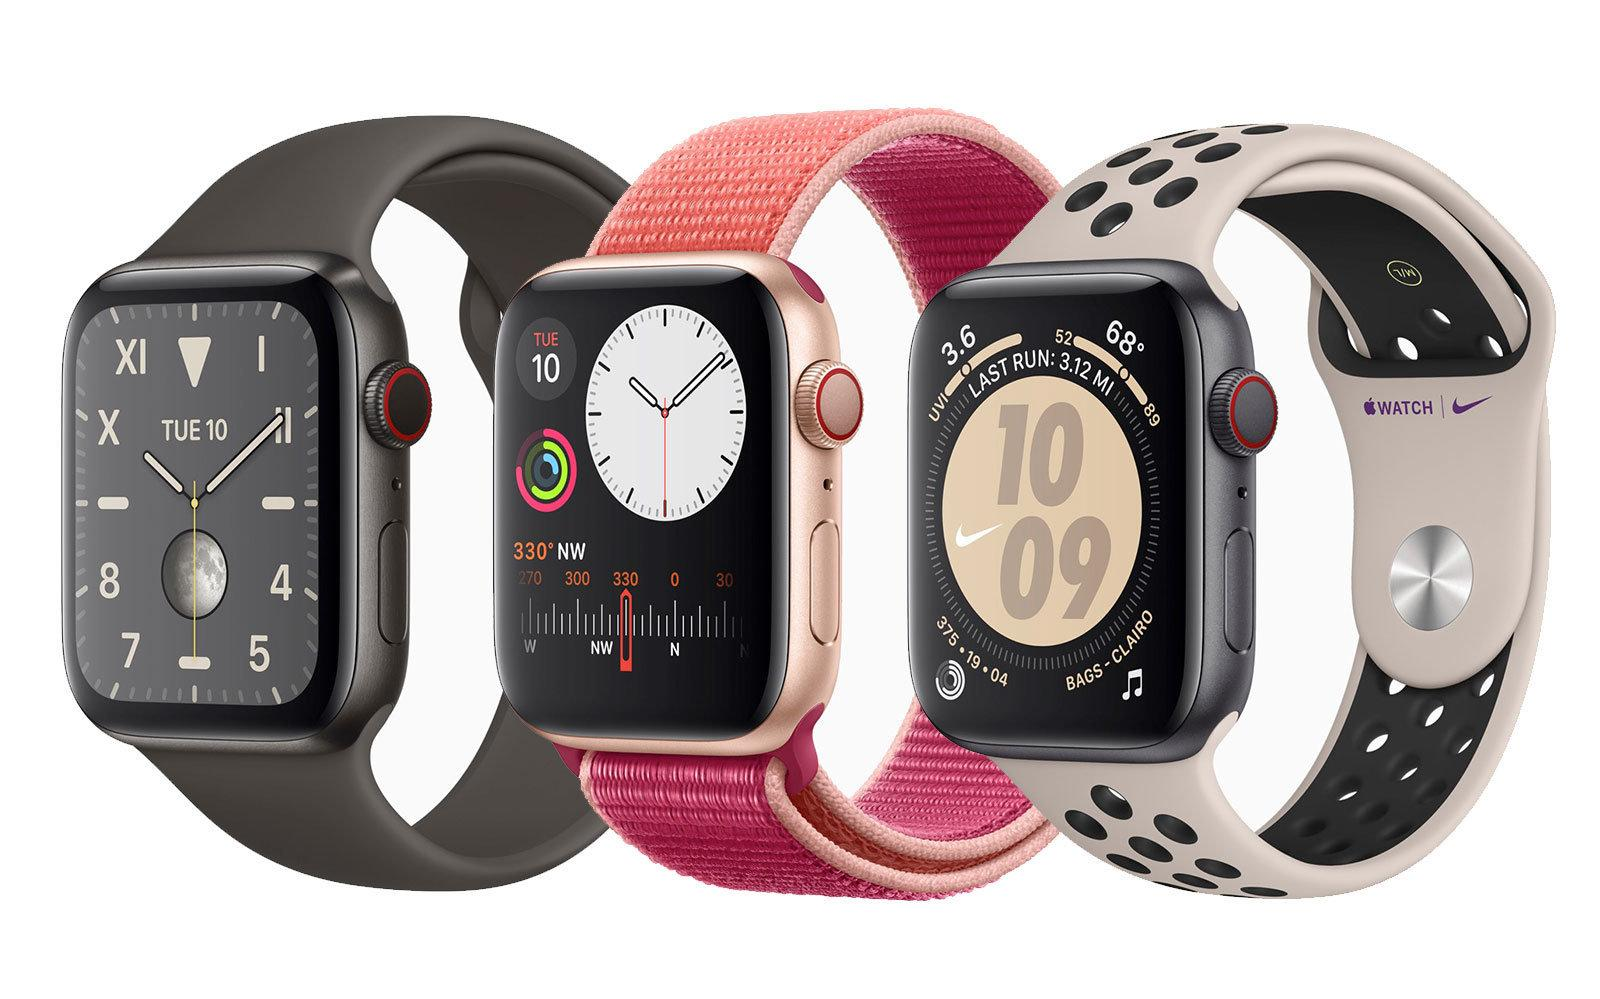 UI evolution: the Apple Watch with Force Touch technology